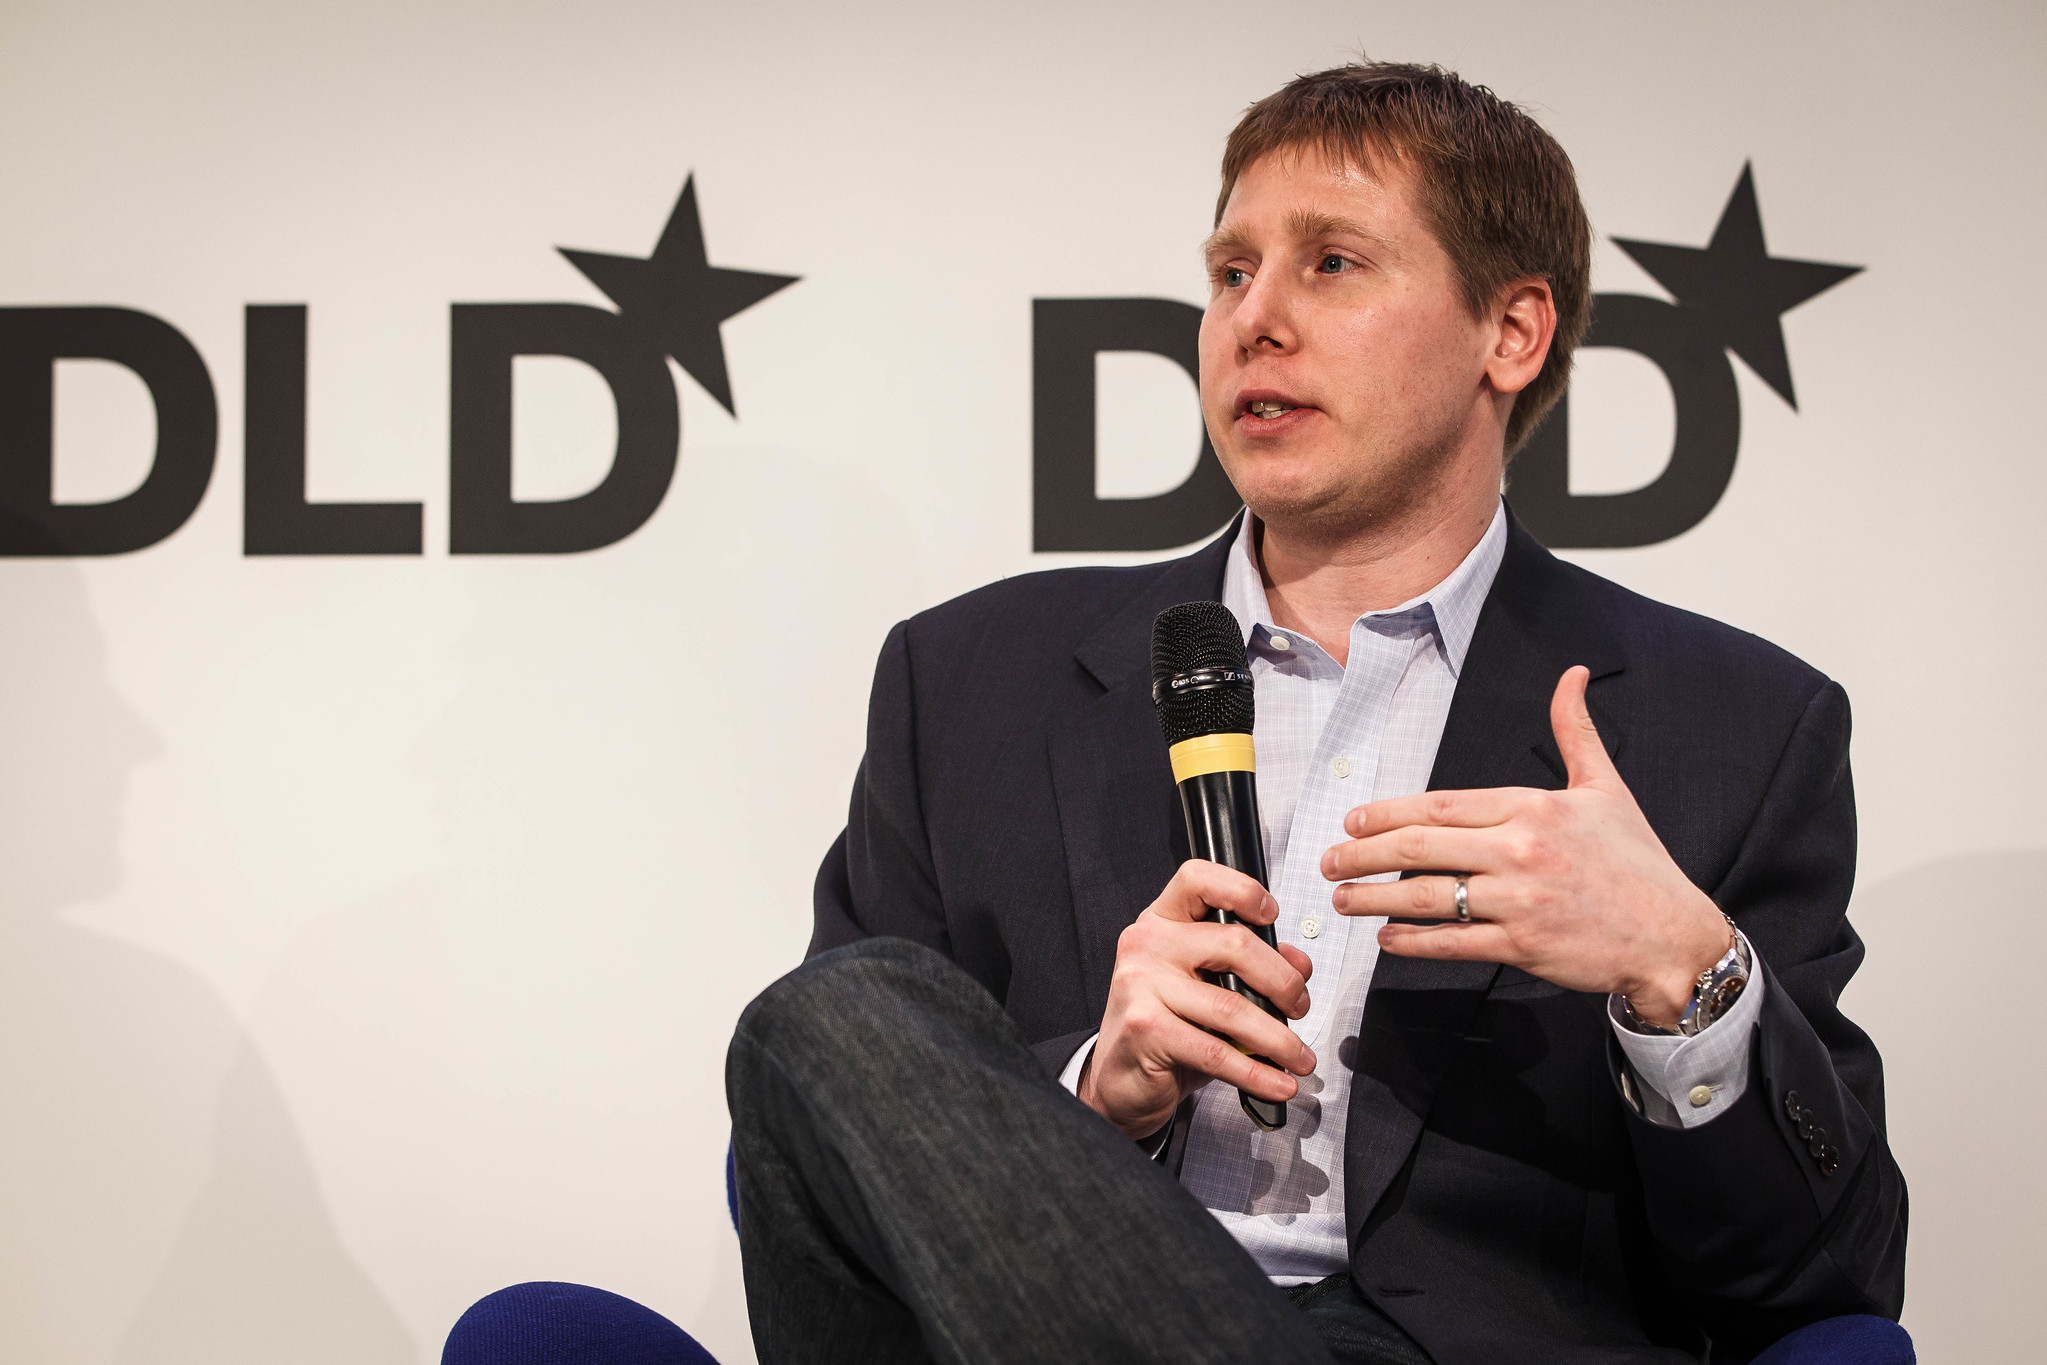 barry silbert explains bitcoin price rise